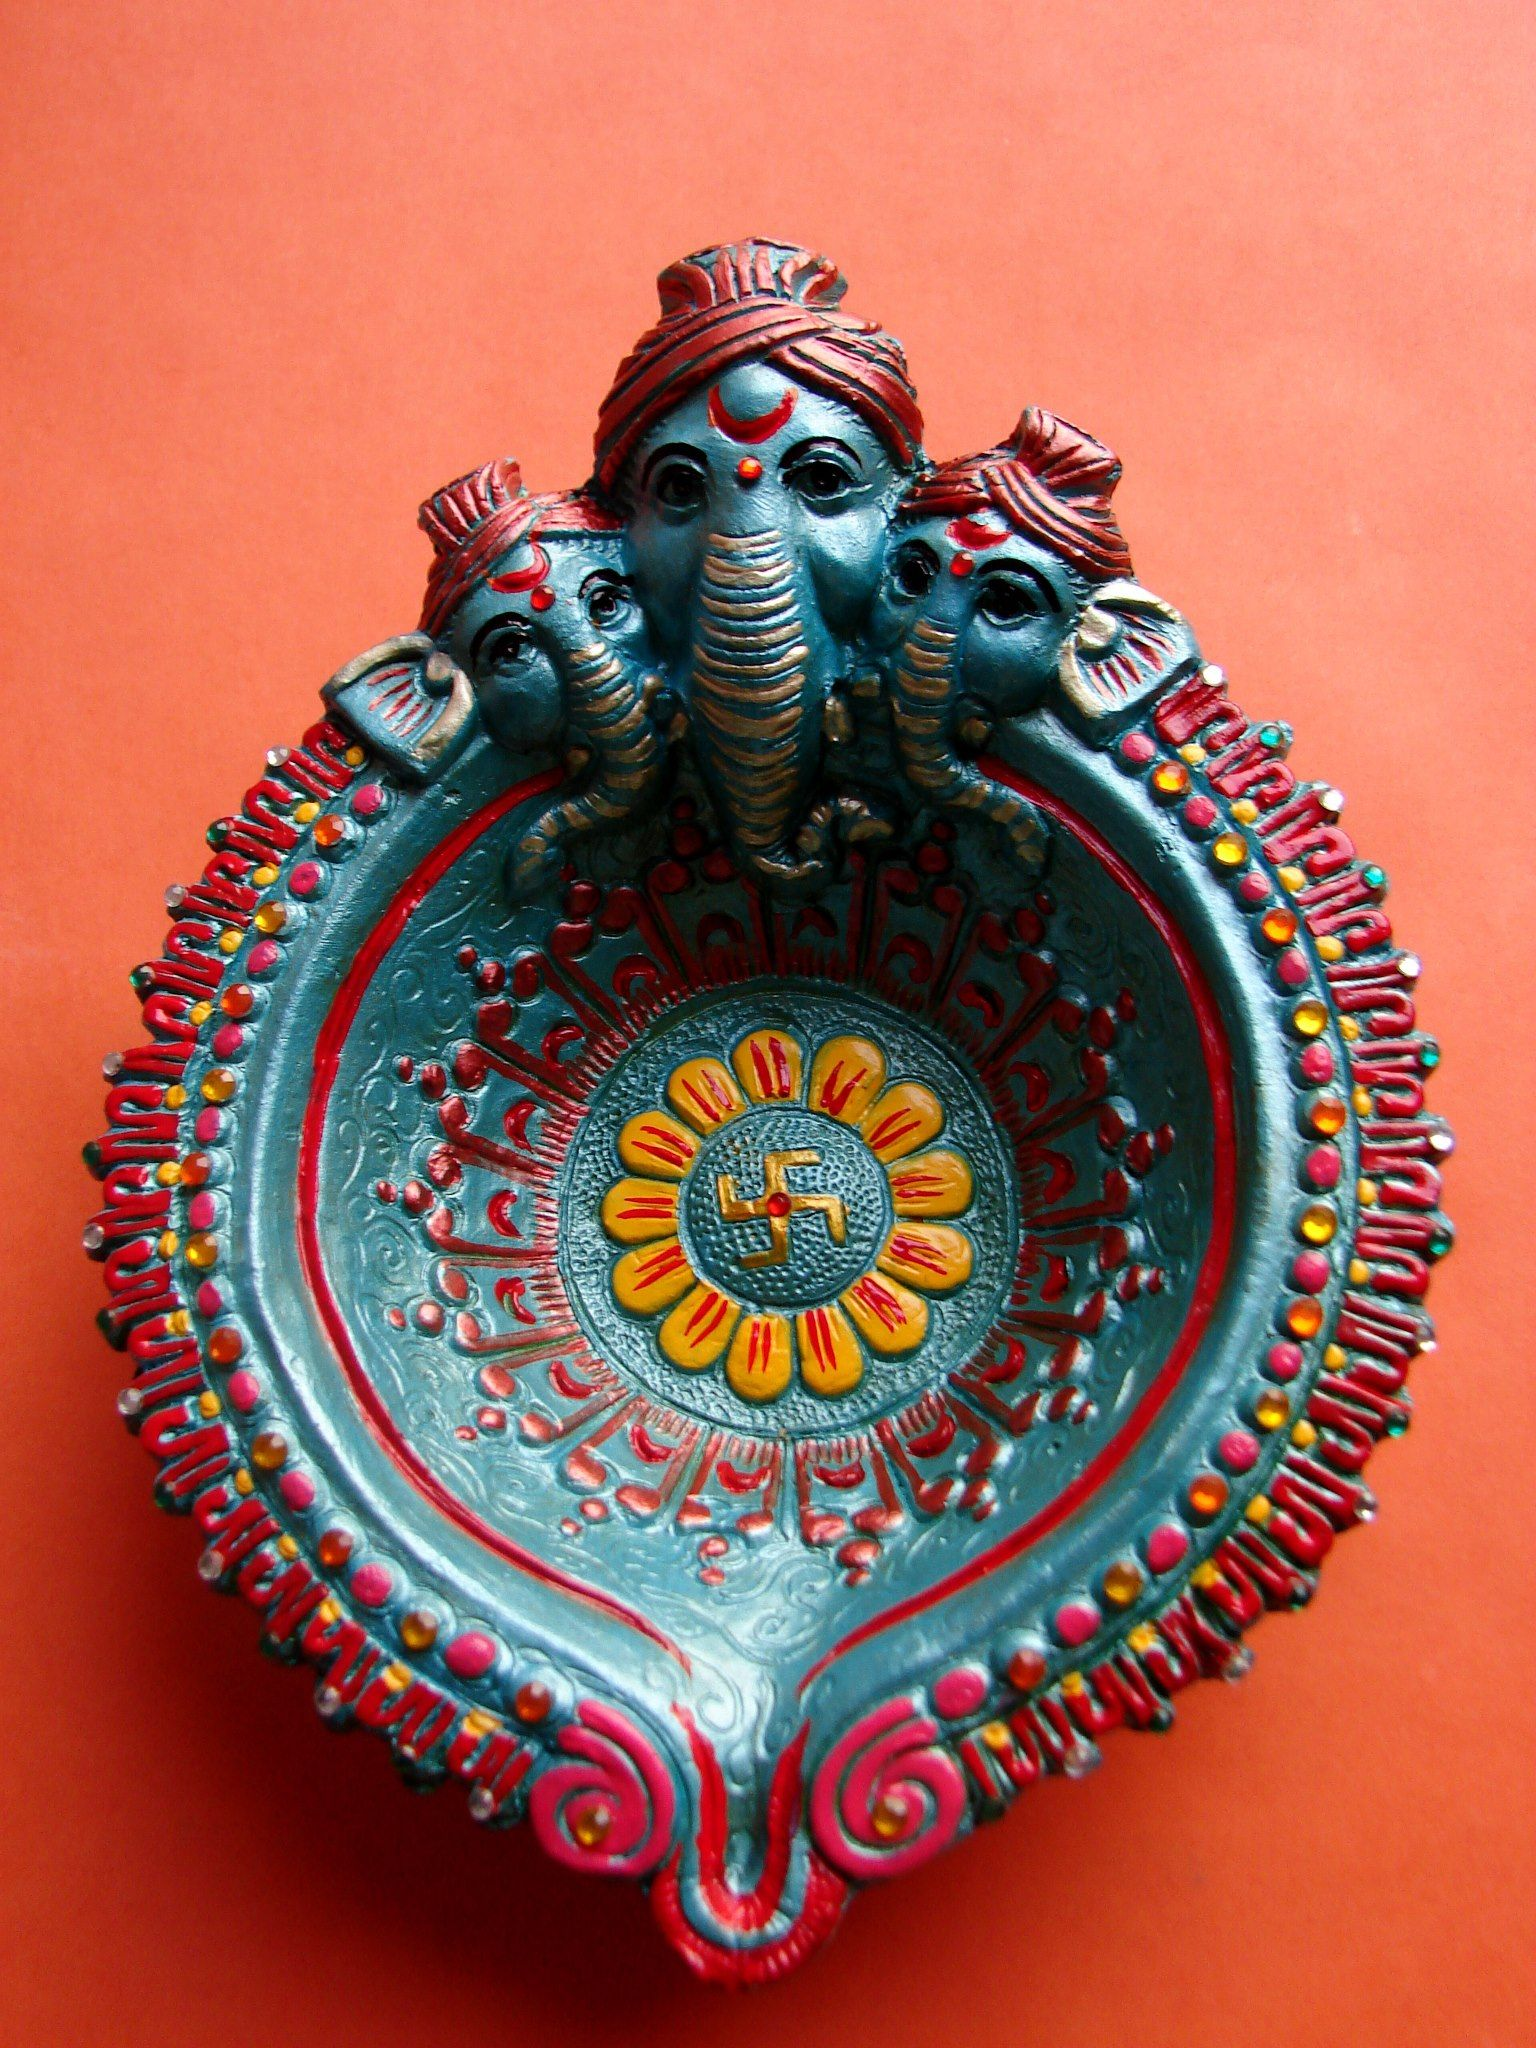 Handpainted Ganesh Diwali Diya Diya Decoration Ideas Diwali Diya Decoration Diwali Diya